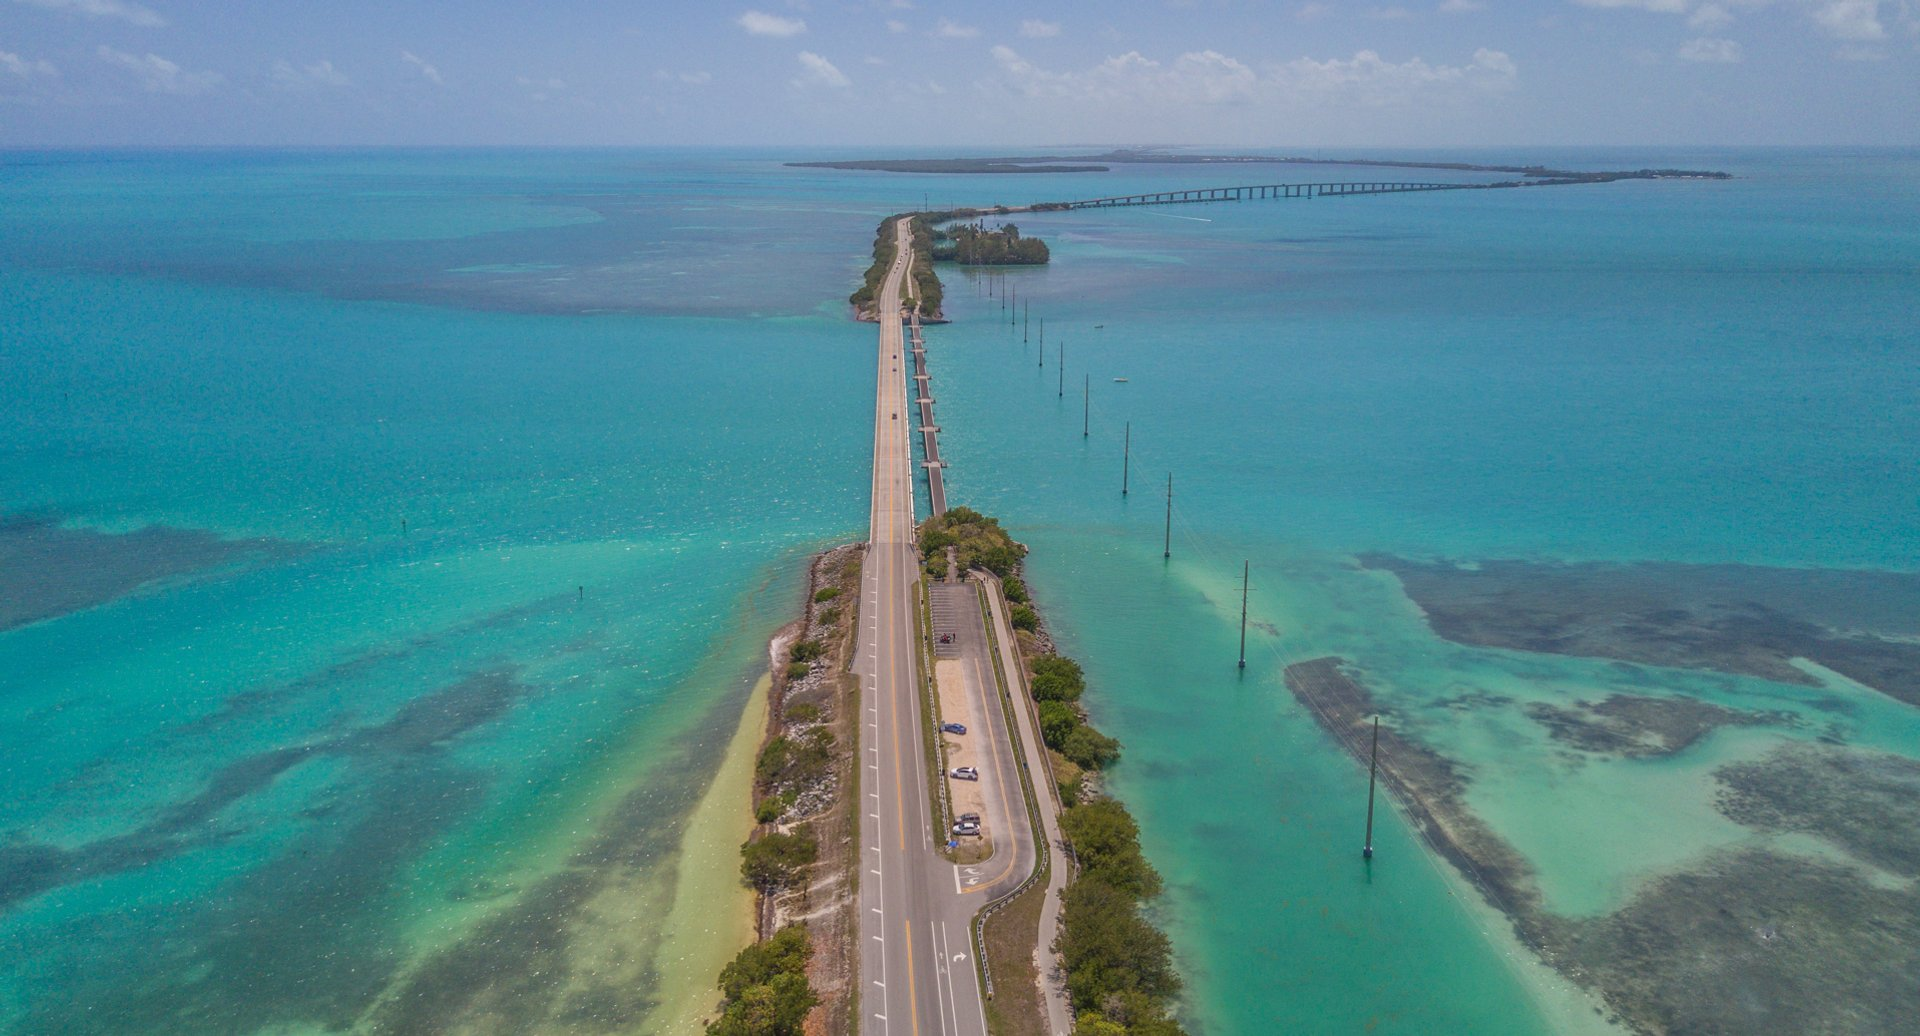 Overseas Highway in Key West & Florida Keys 2019 - Best Time